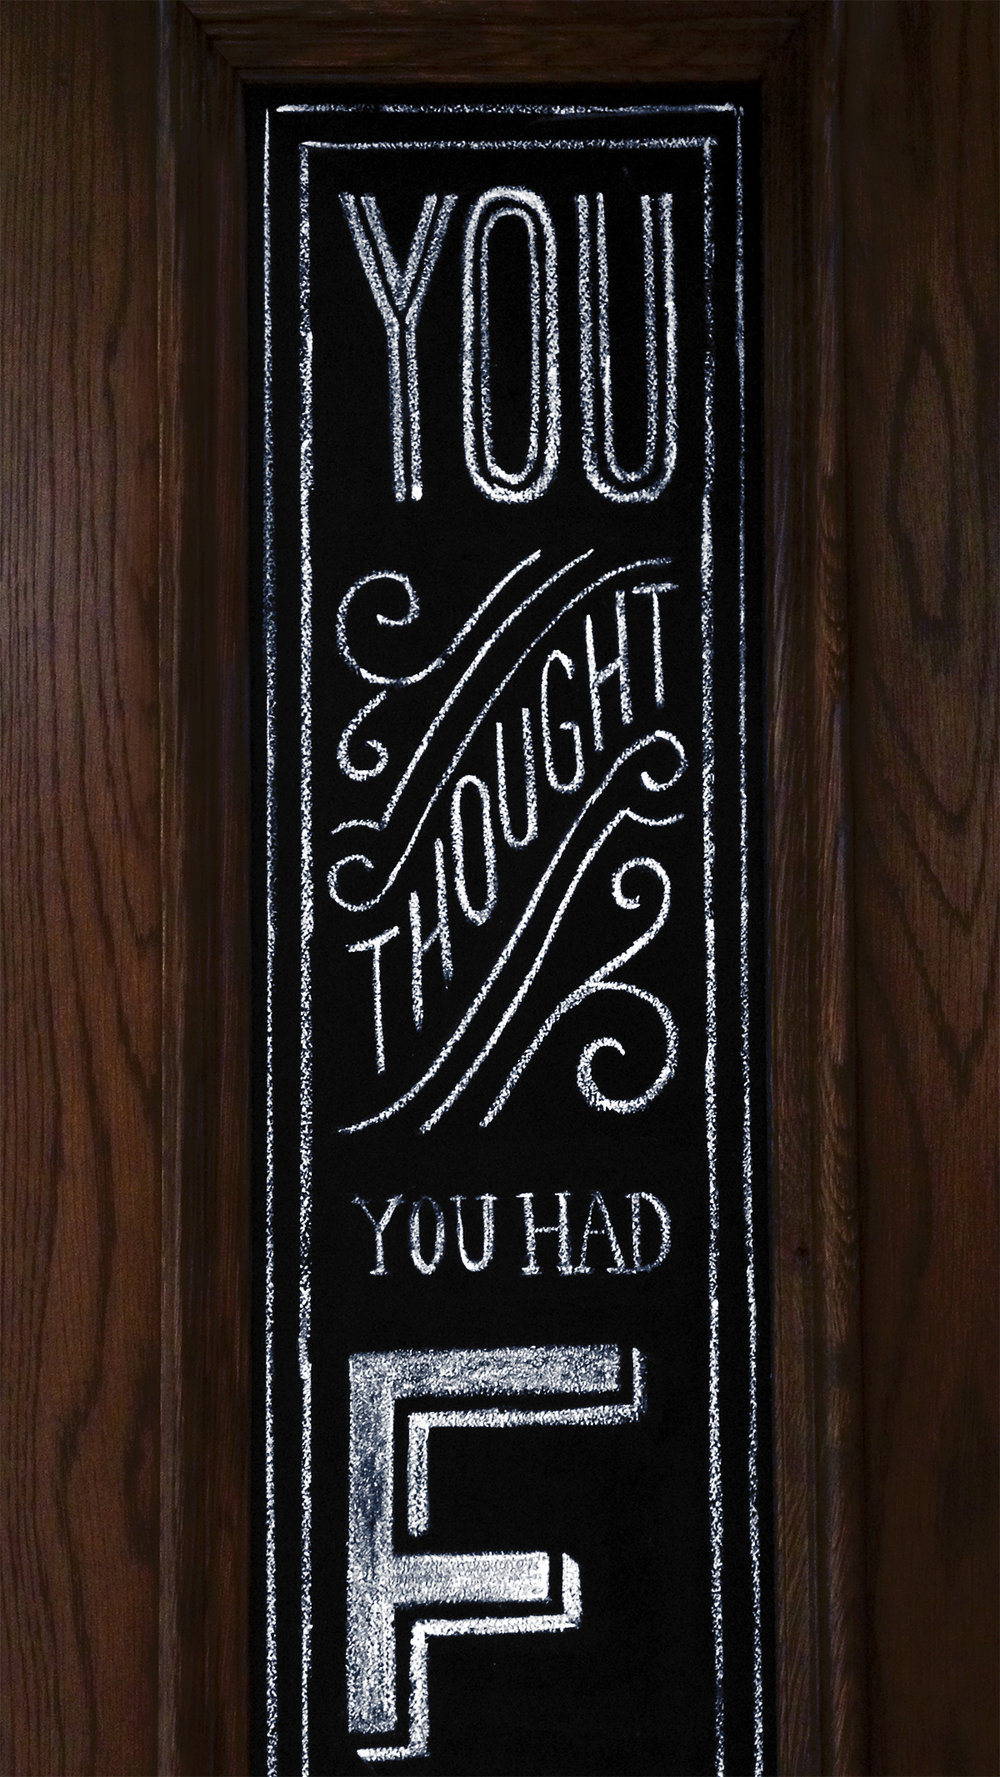 LPSignage_YouThought_Detail.jpg